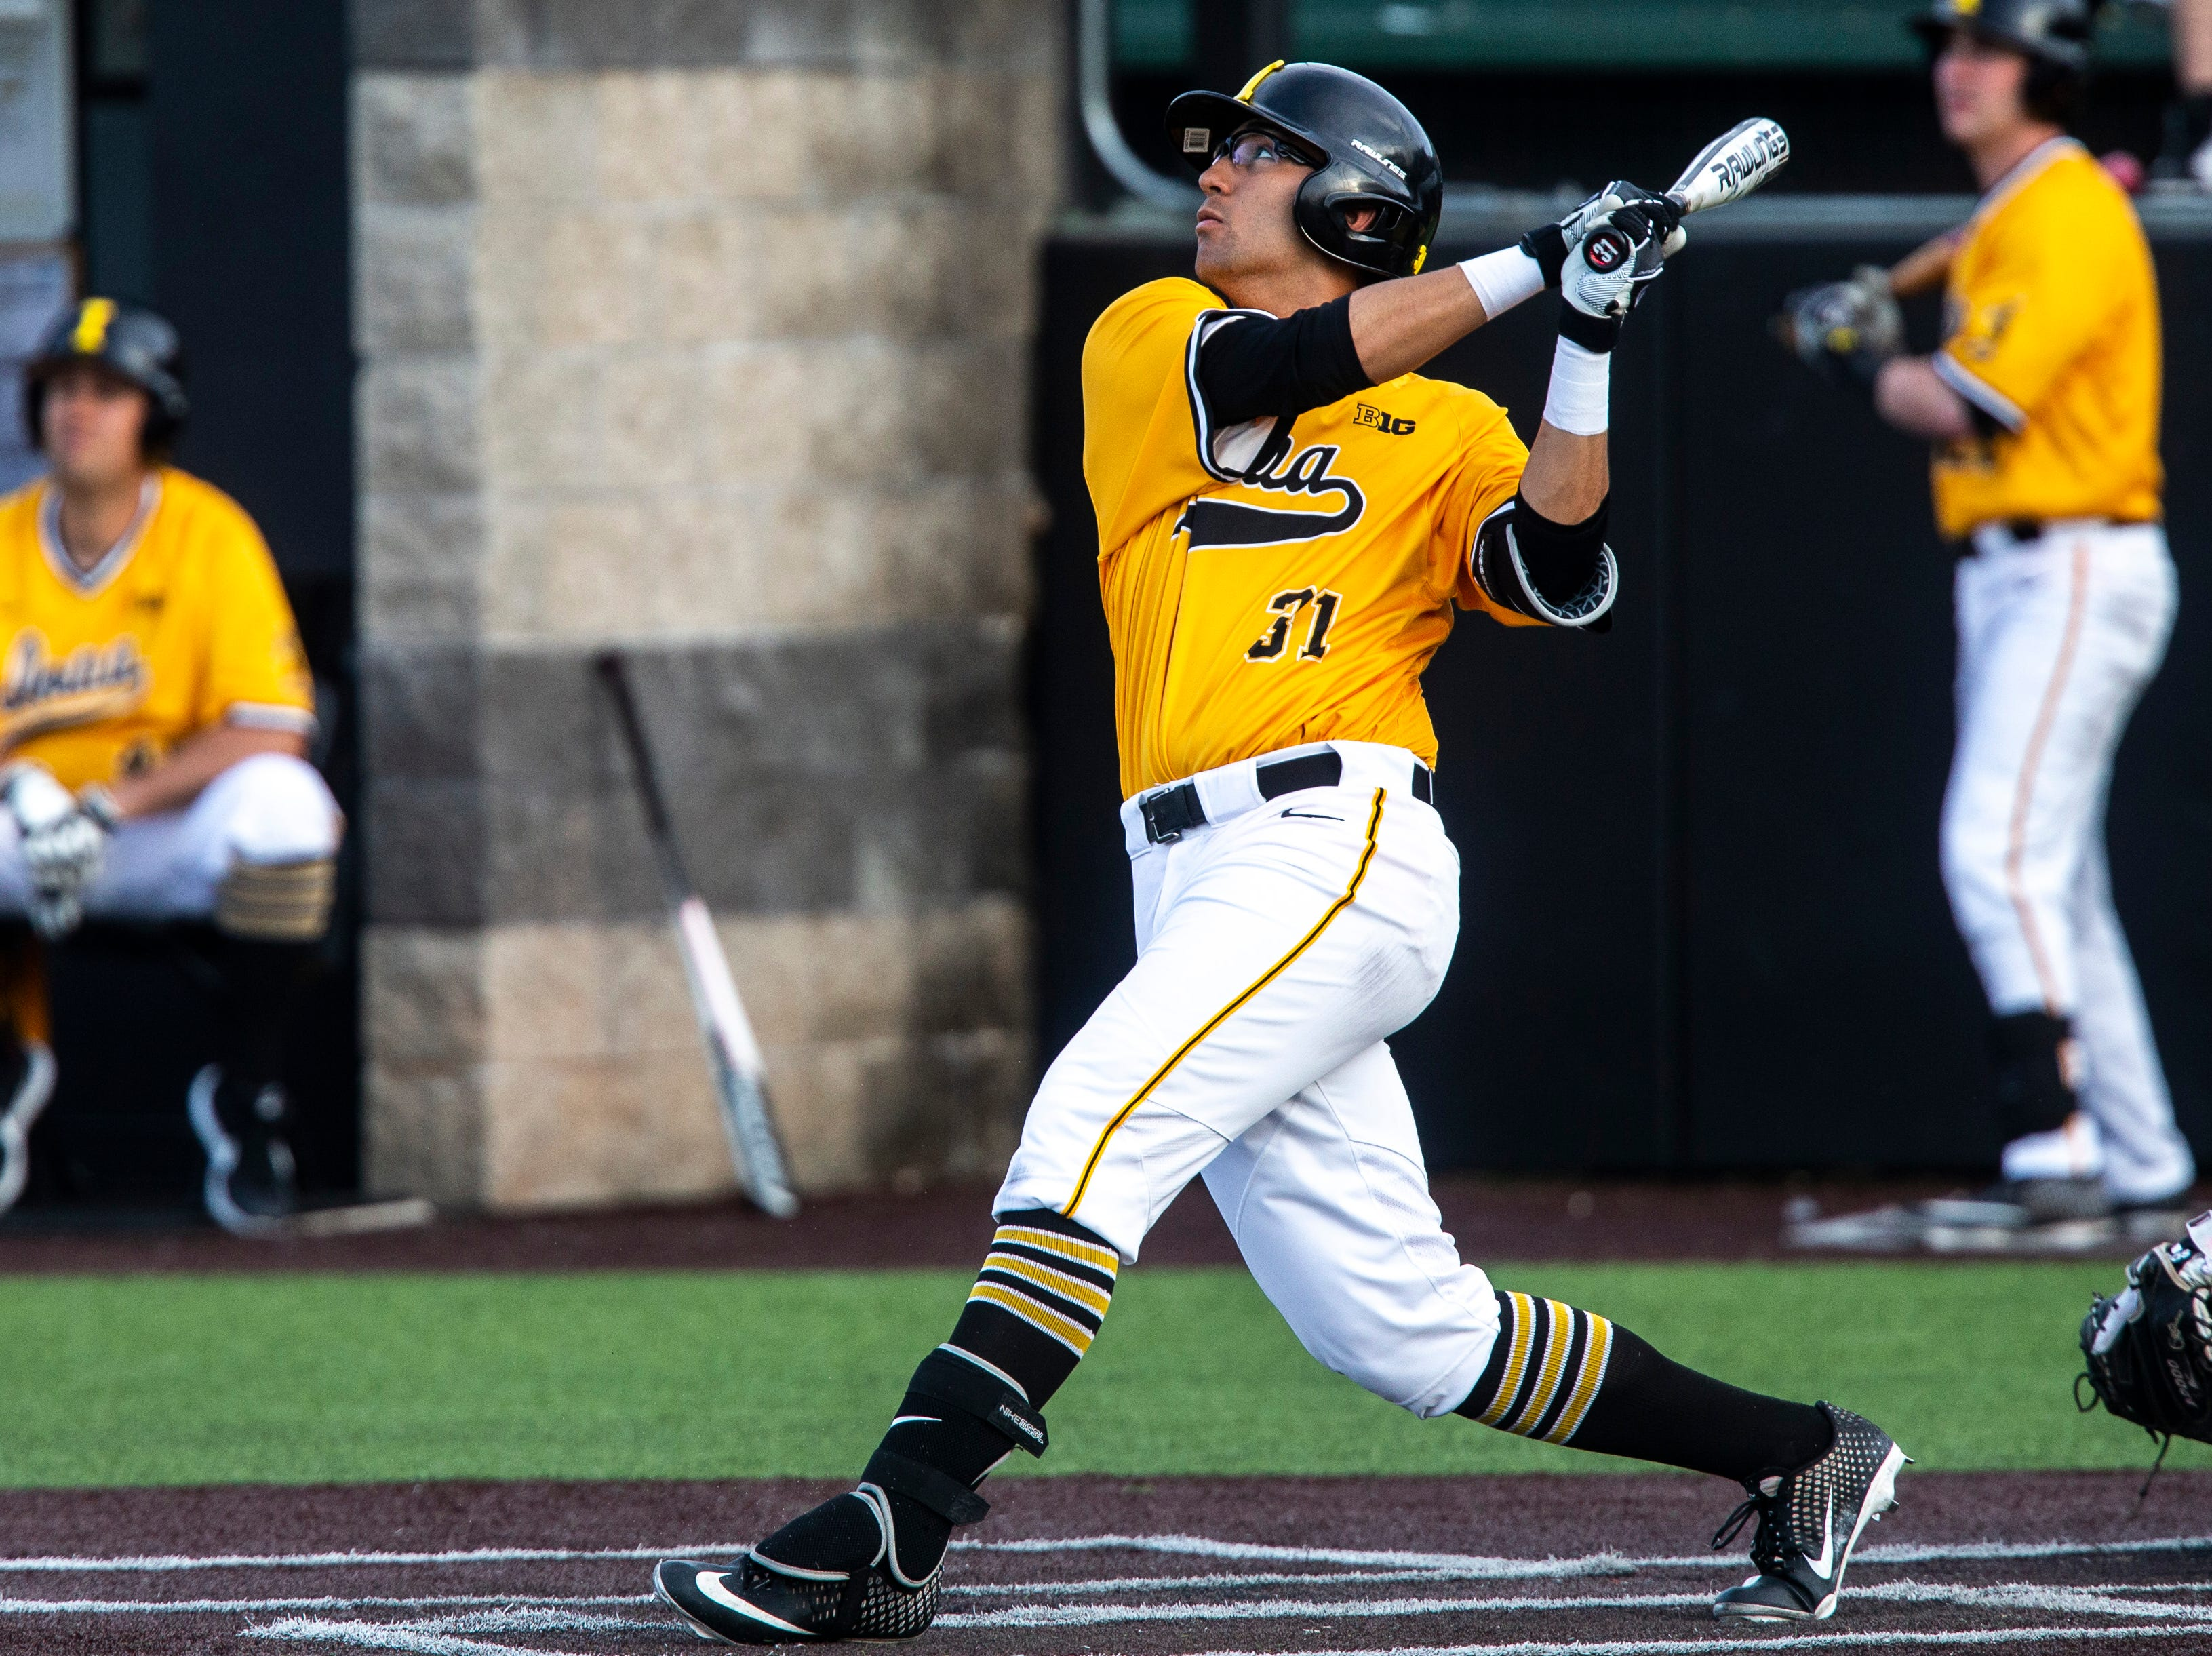 Iowa infielder Matthew Sosa (31) bats during a NCAA Big Ten Conference baseball game on Saturday, April 6, 2019, at Duane Banks Field in Iowa City, Iowa.